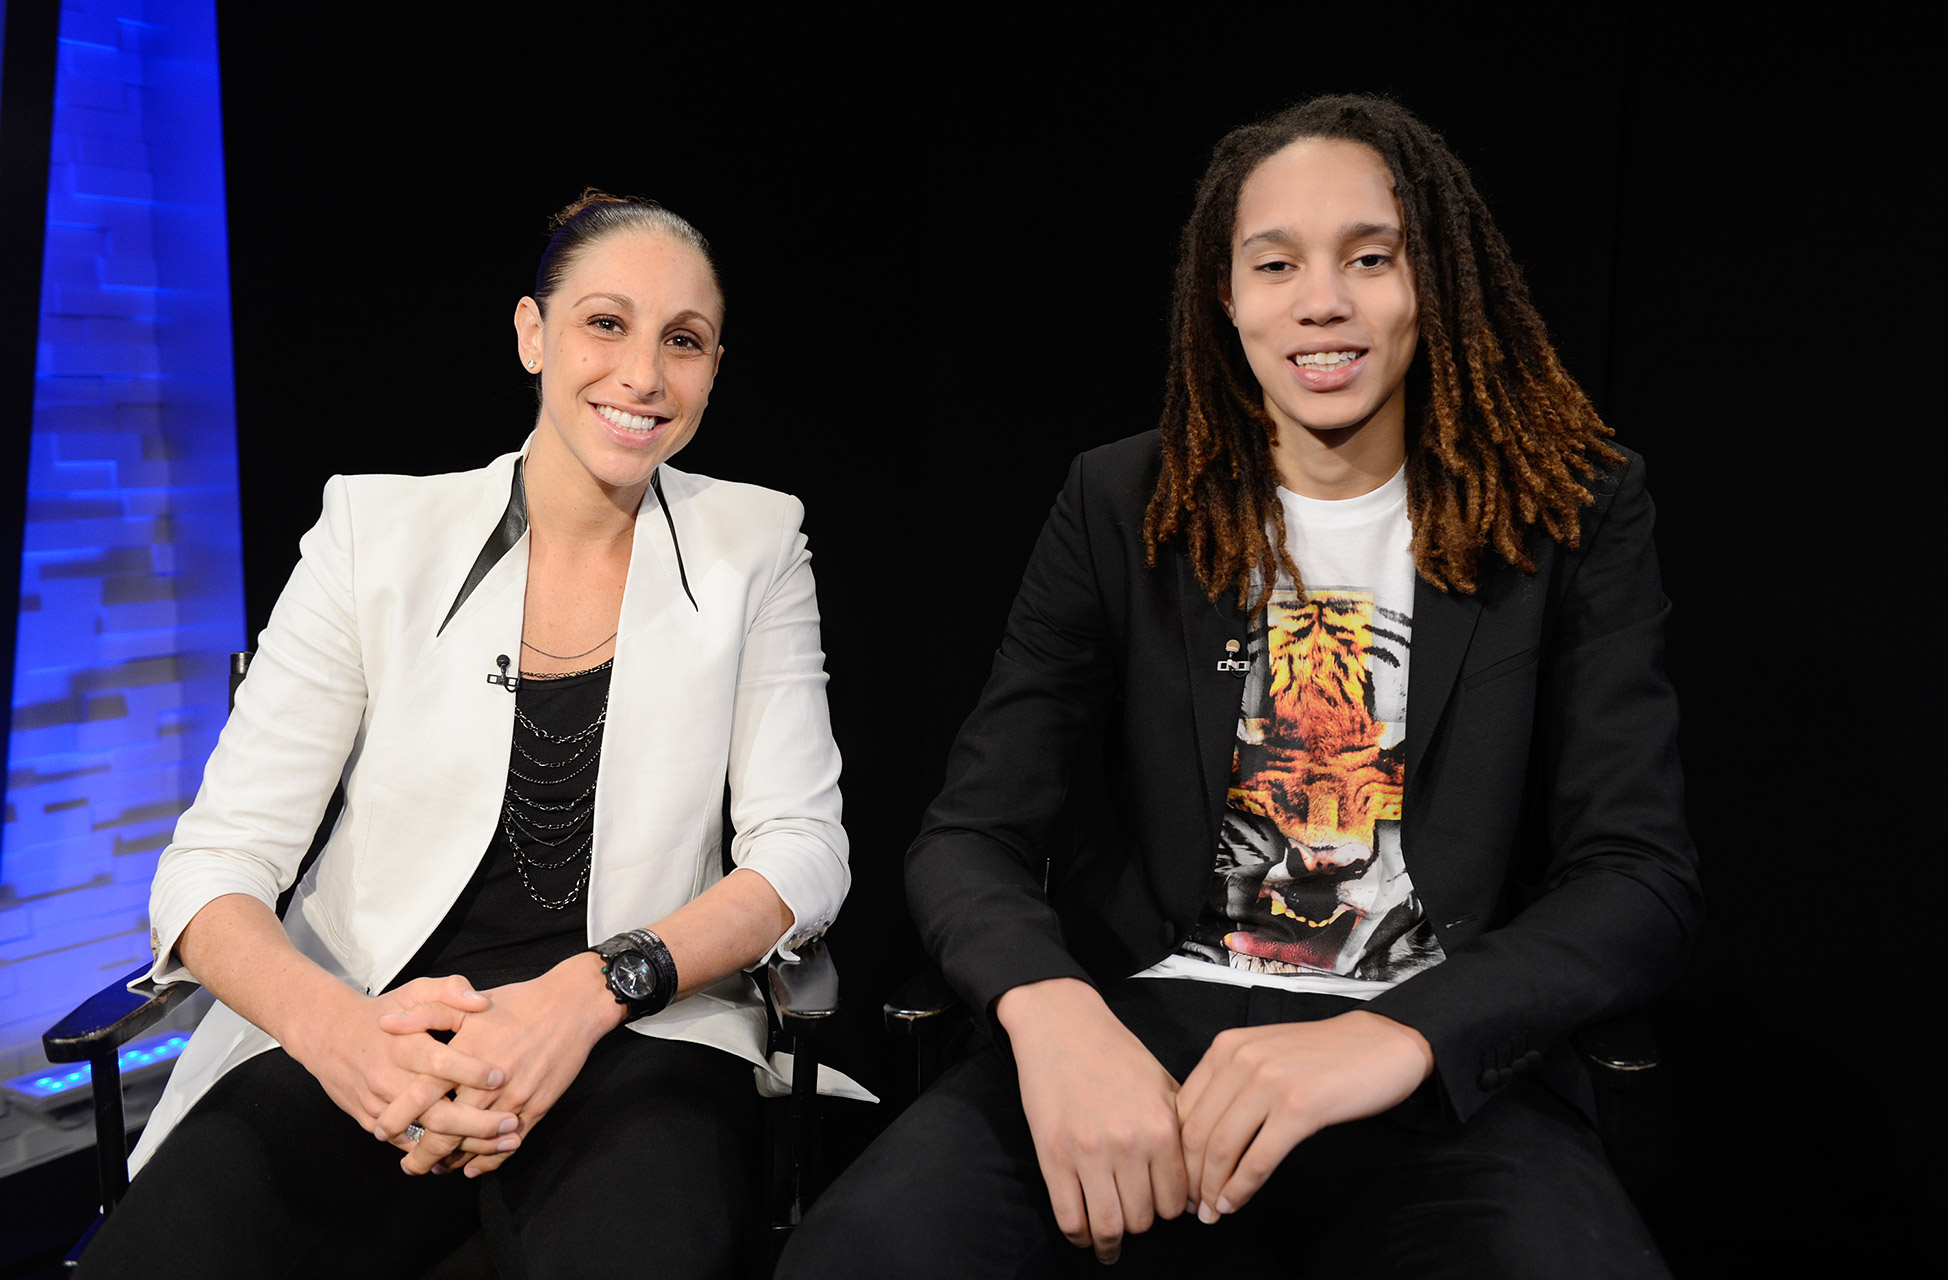 Phoenix Mercury teammates Diana Taurasi and Brittney Griner are elevating the WNBA in their own unique ways. Before beginning their playoff push, they sat down with Robin Roberts.